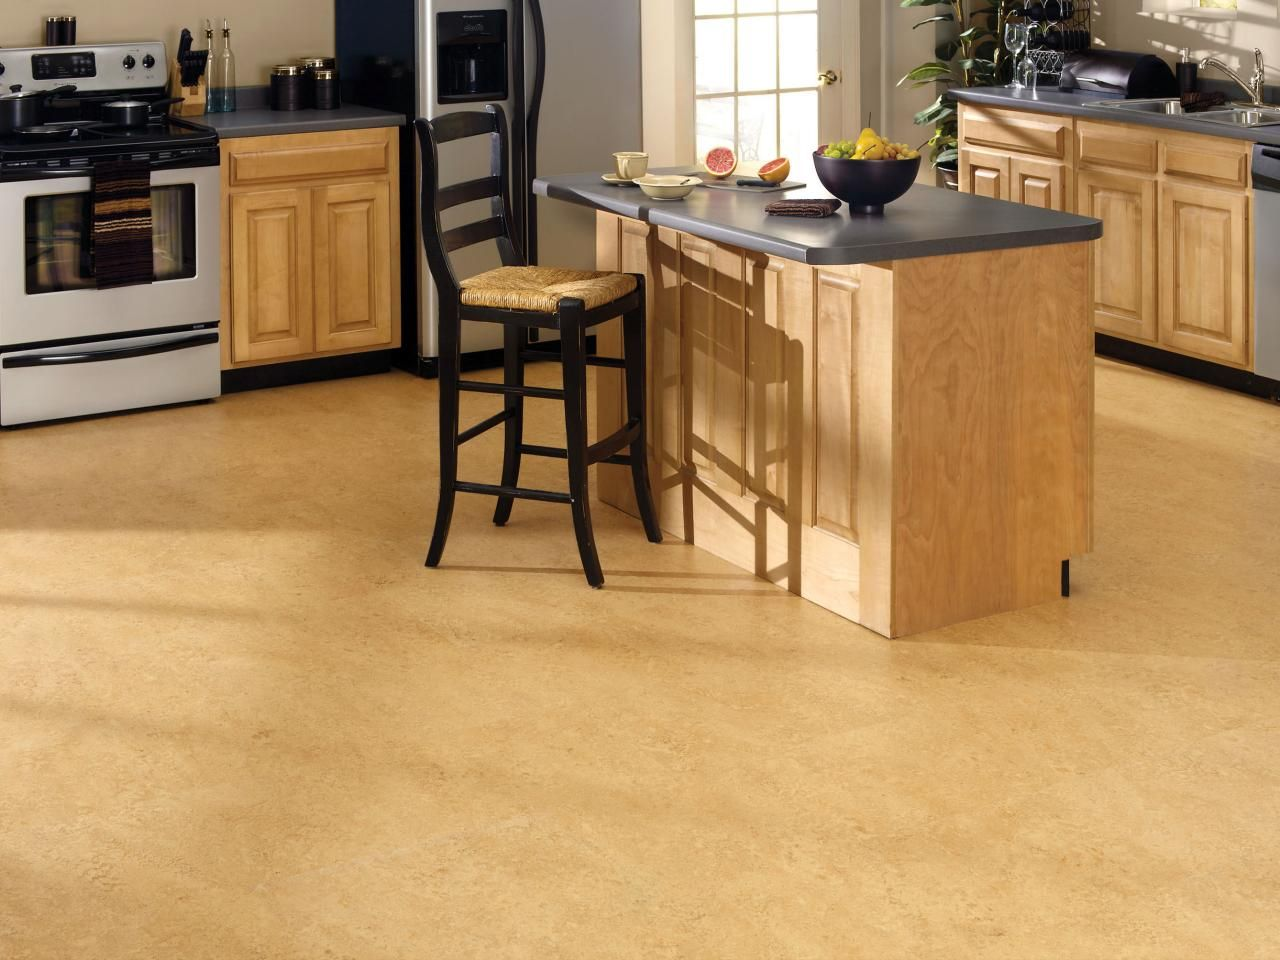 Flooring trends kitchen vinyl flooring ideas and diy for Diy kitchen floor ideas